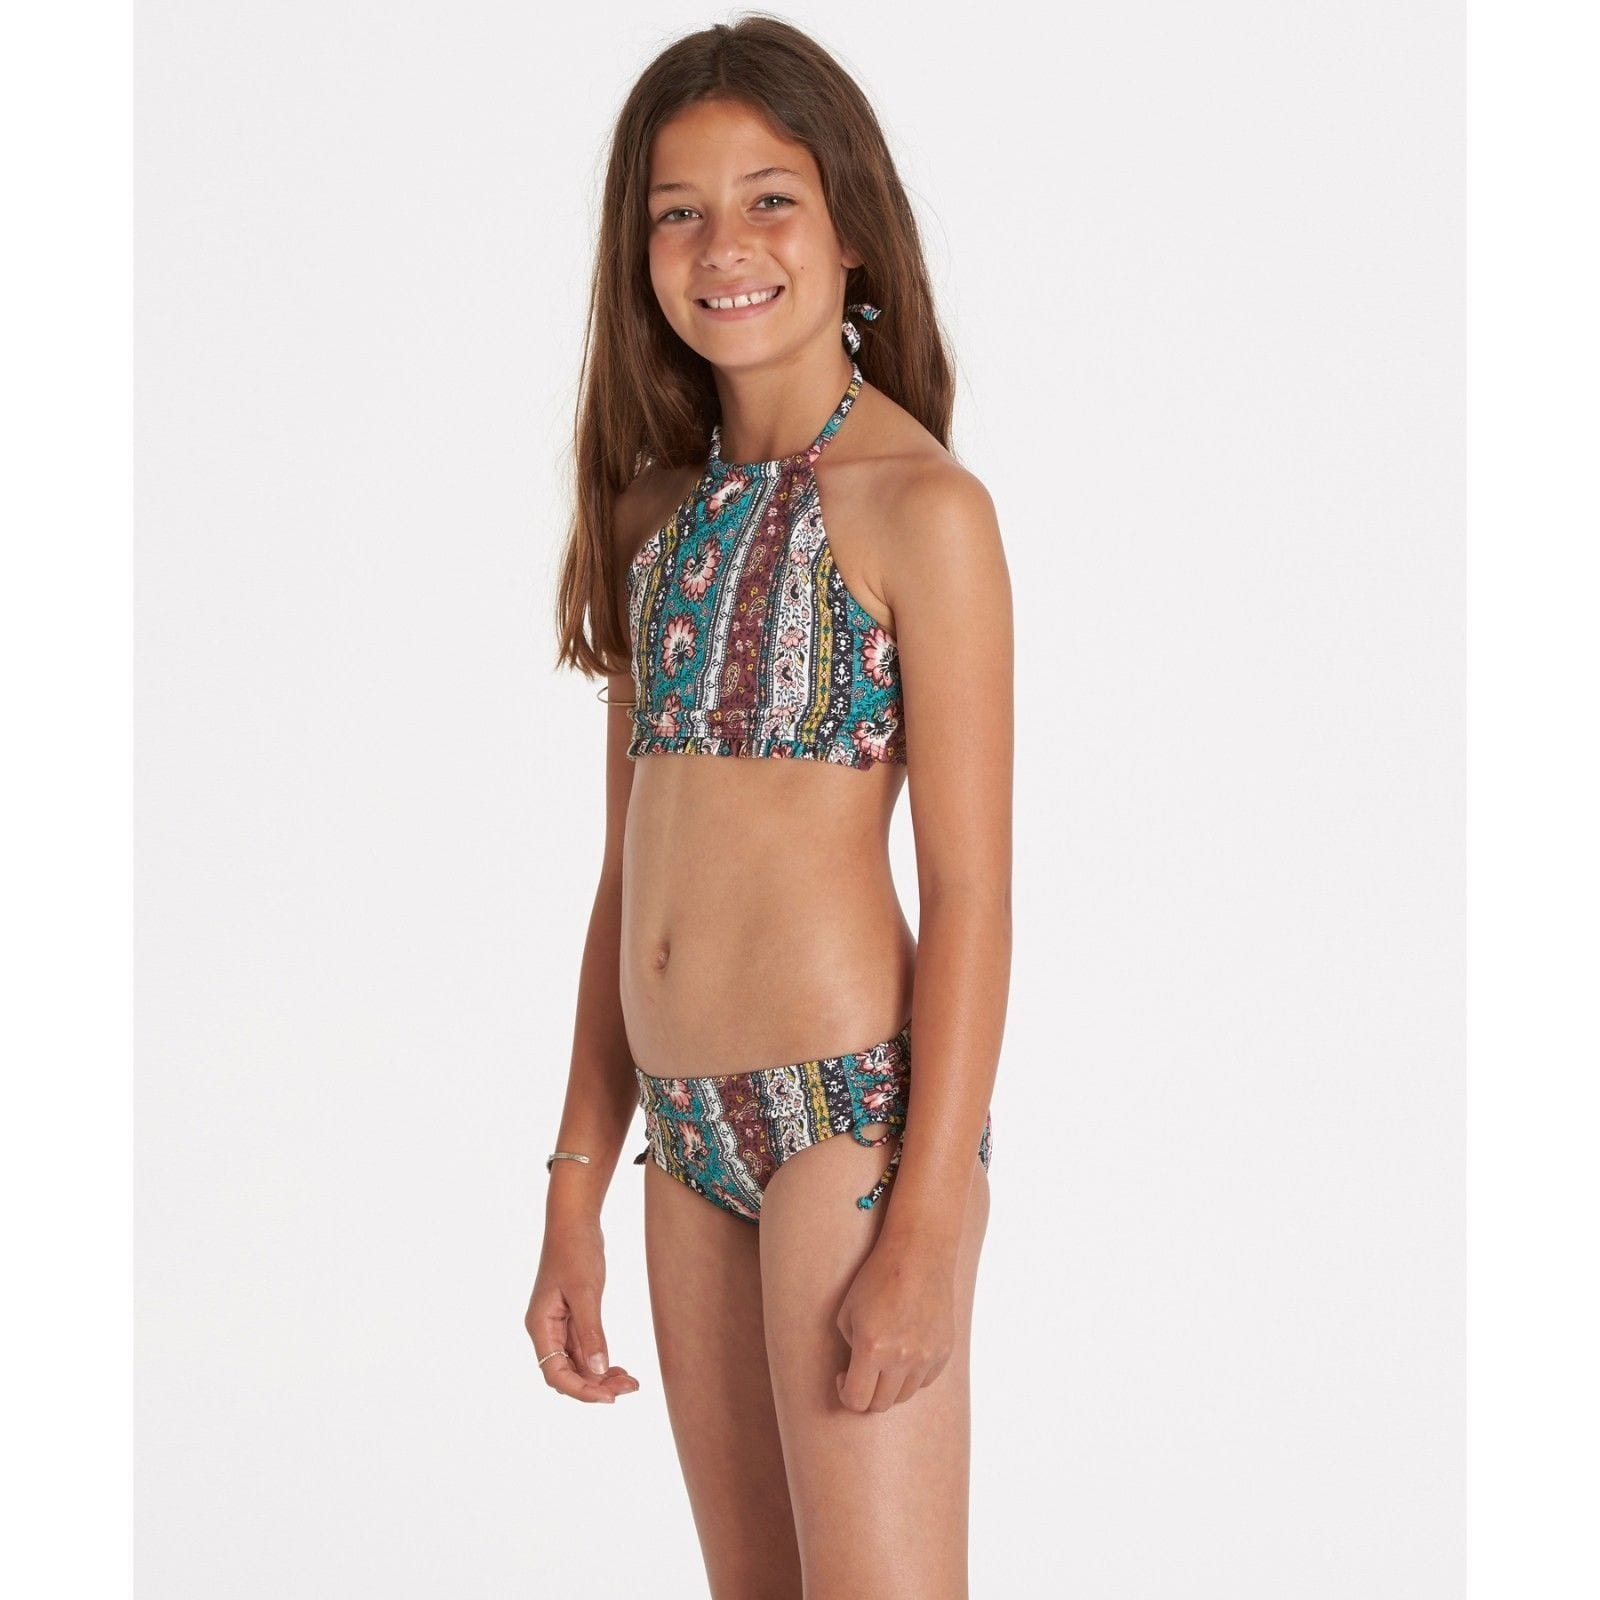 a70a0bac6cdc Shop Billabong Girls' Girls' Hippy Ditsy High Neck Swim Set SIZE 5 - Free  Shipping On Orders Over $45 - Overstock - 26282262